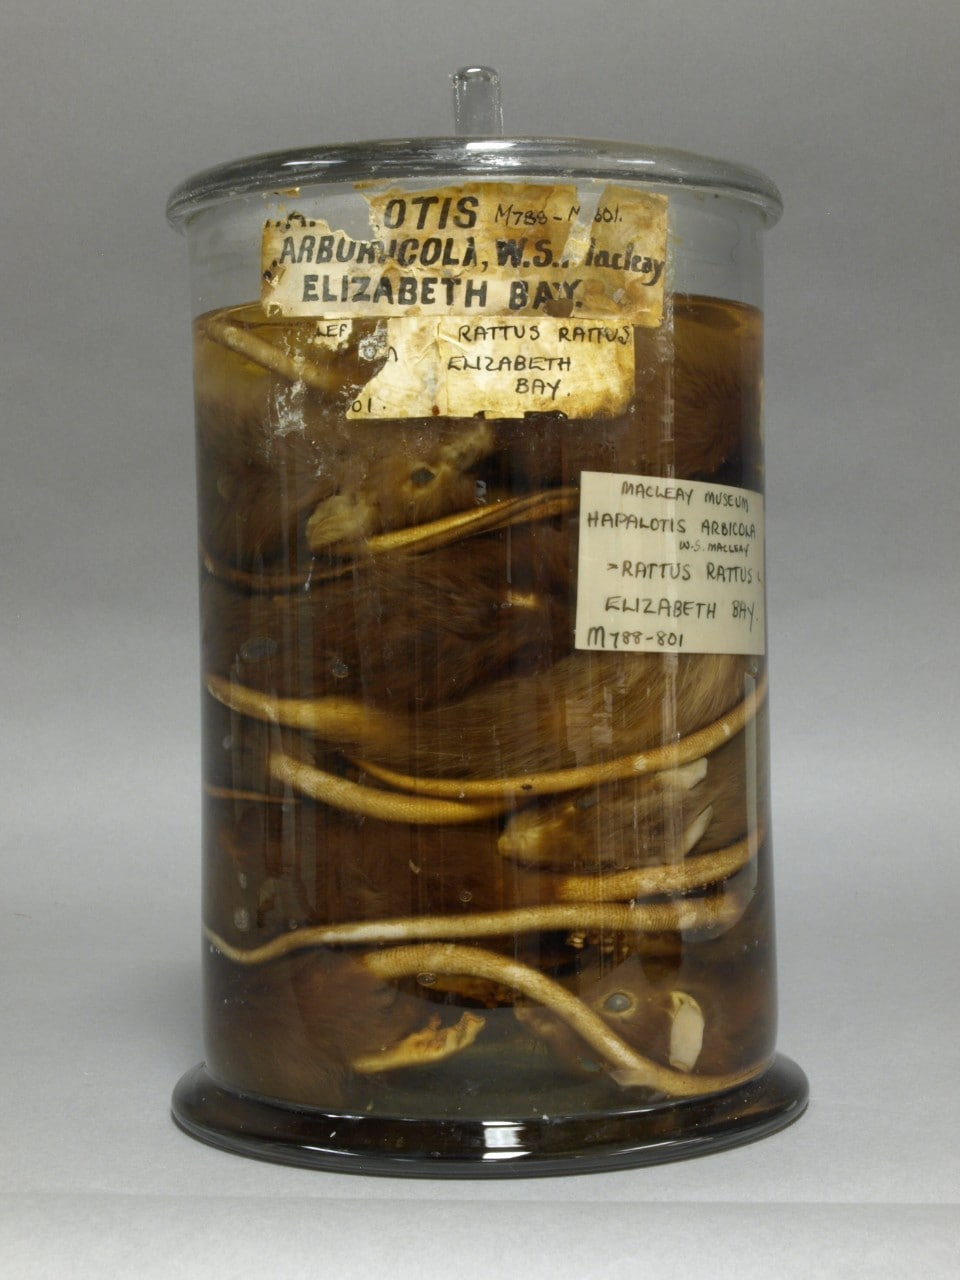 The Macleay Museum's jar of rats.